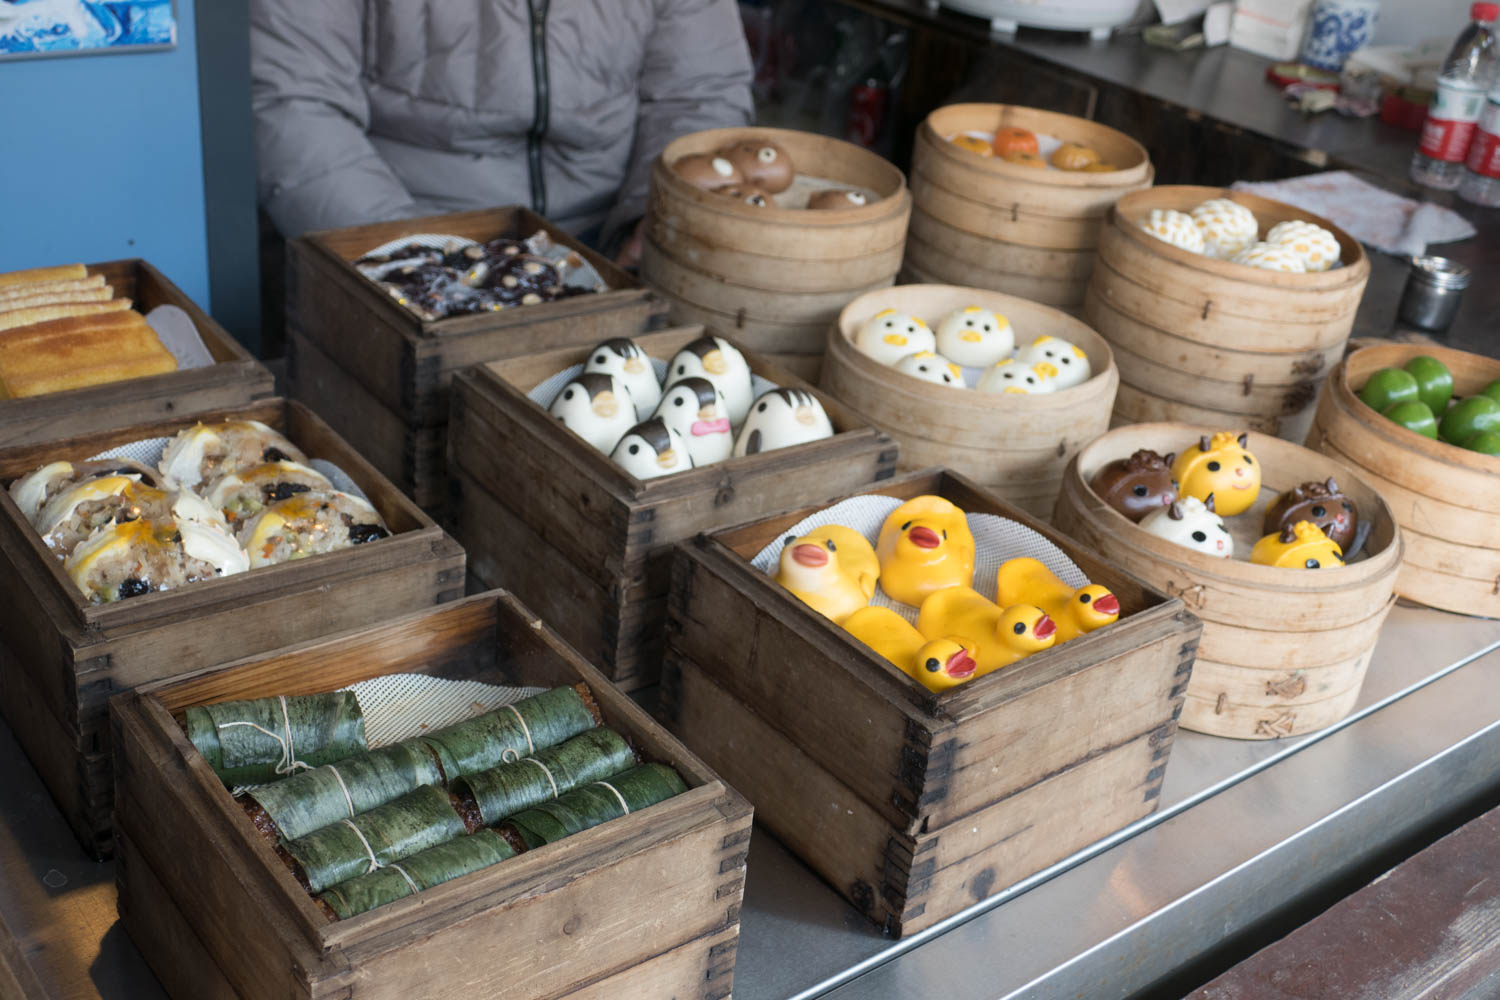 There's a large variety of street food available